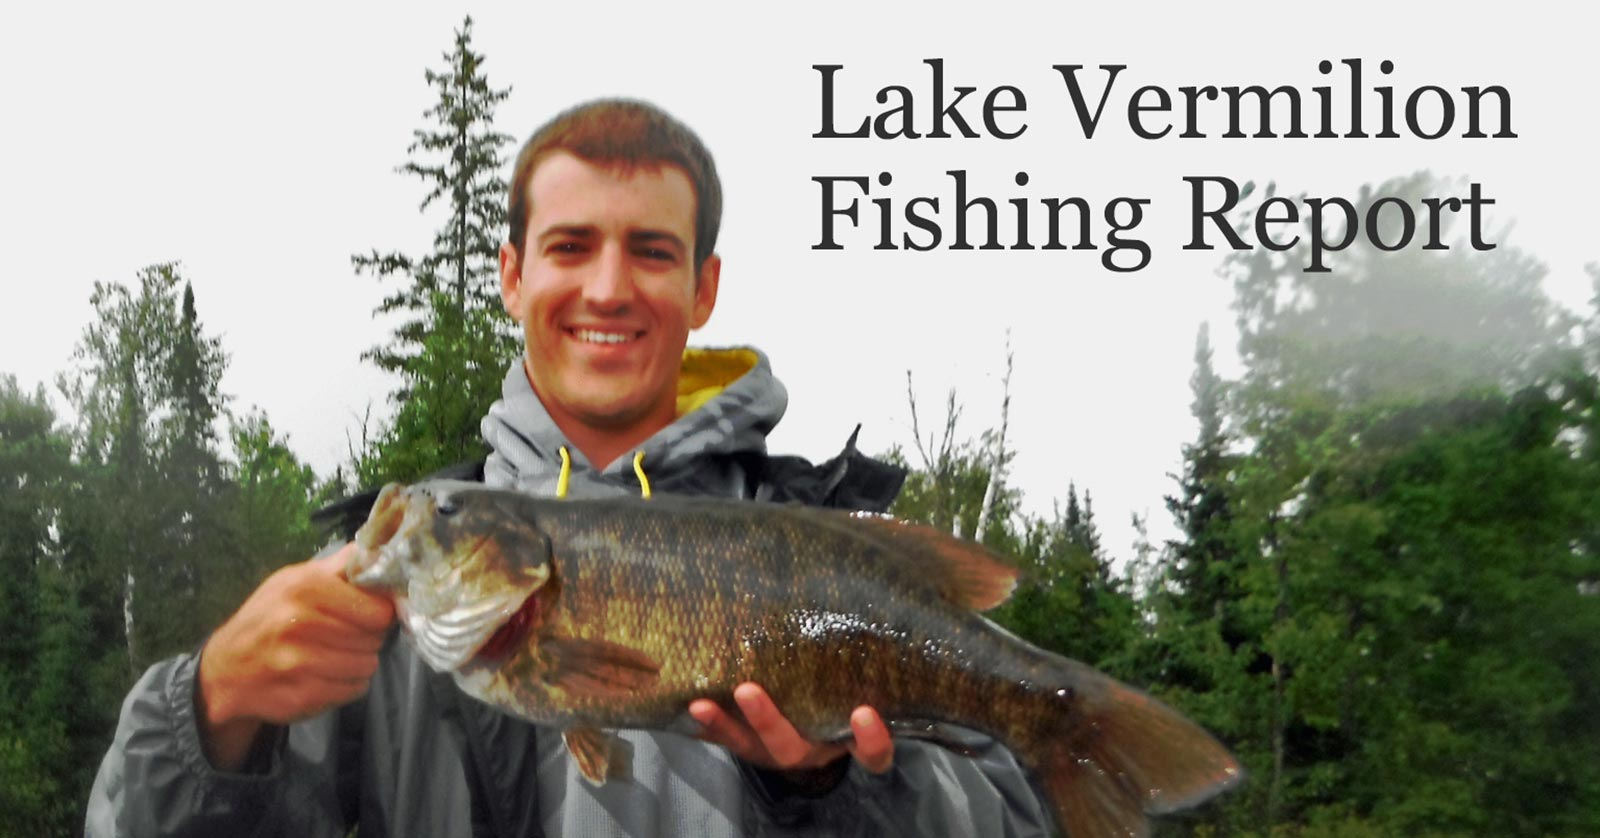 Lake vermilion fishing report west end for Lake fishing report